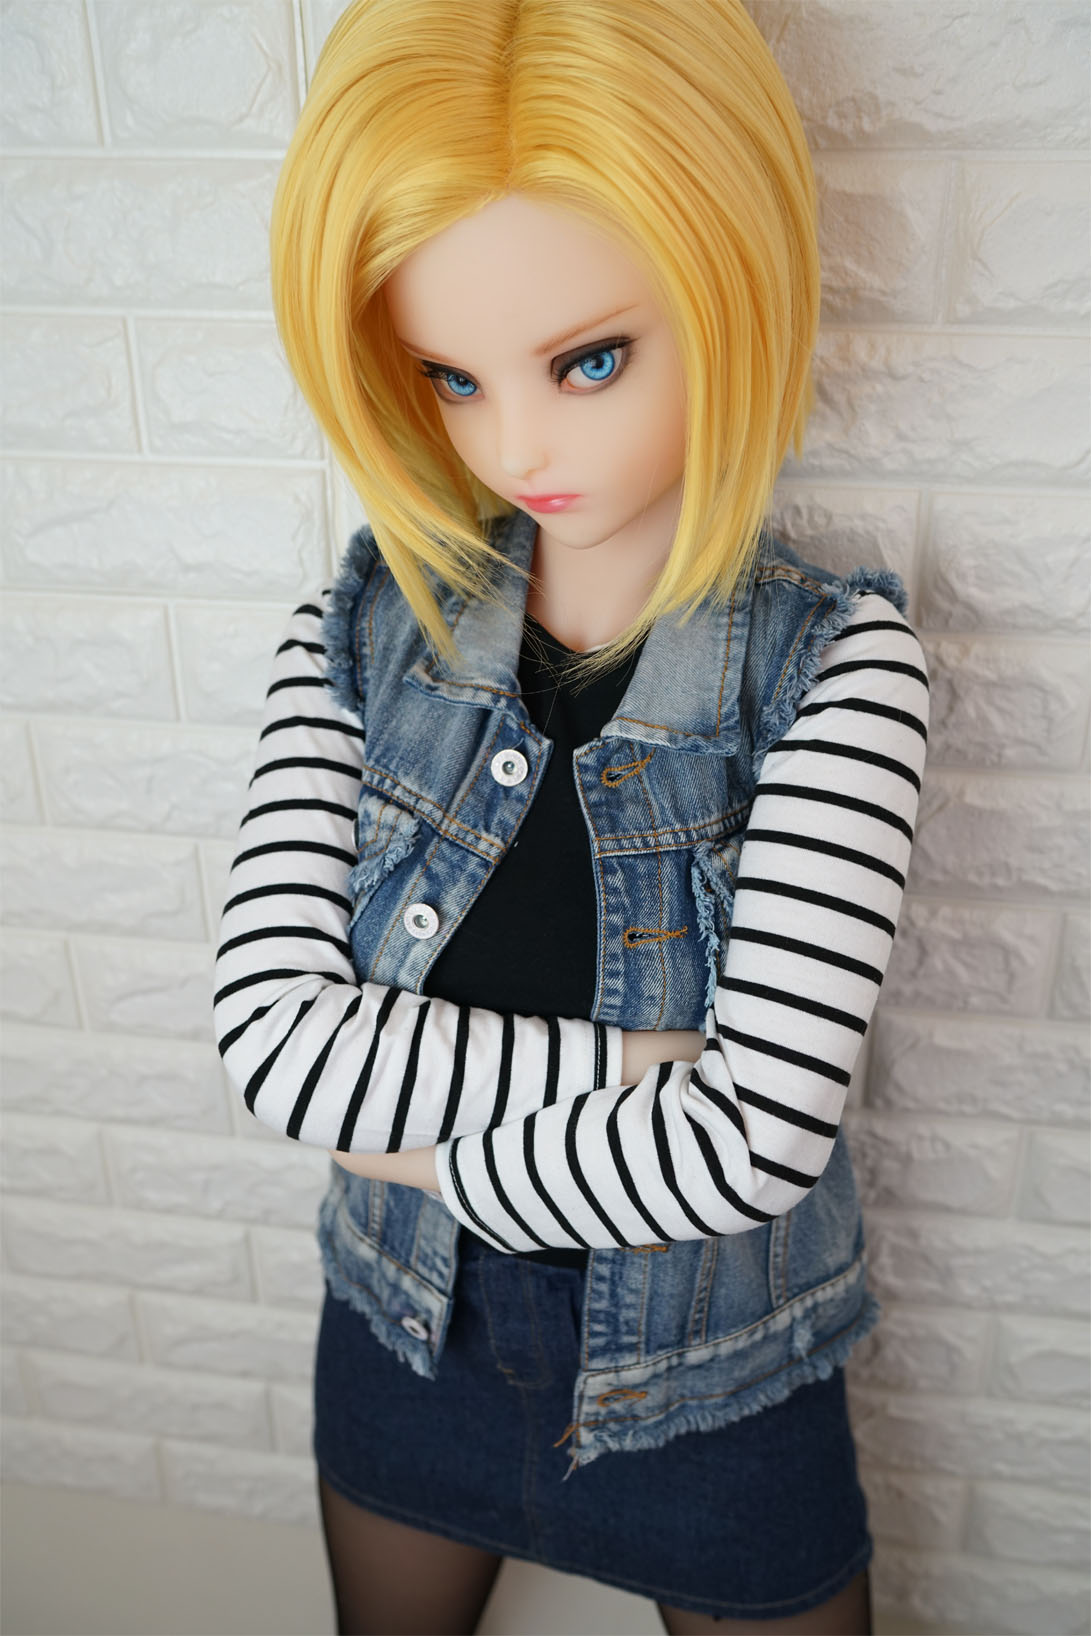 Android 18 Sex Video japanese anime android 18 lazuli real sex doll